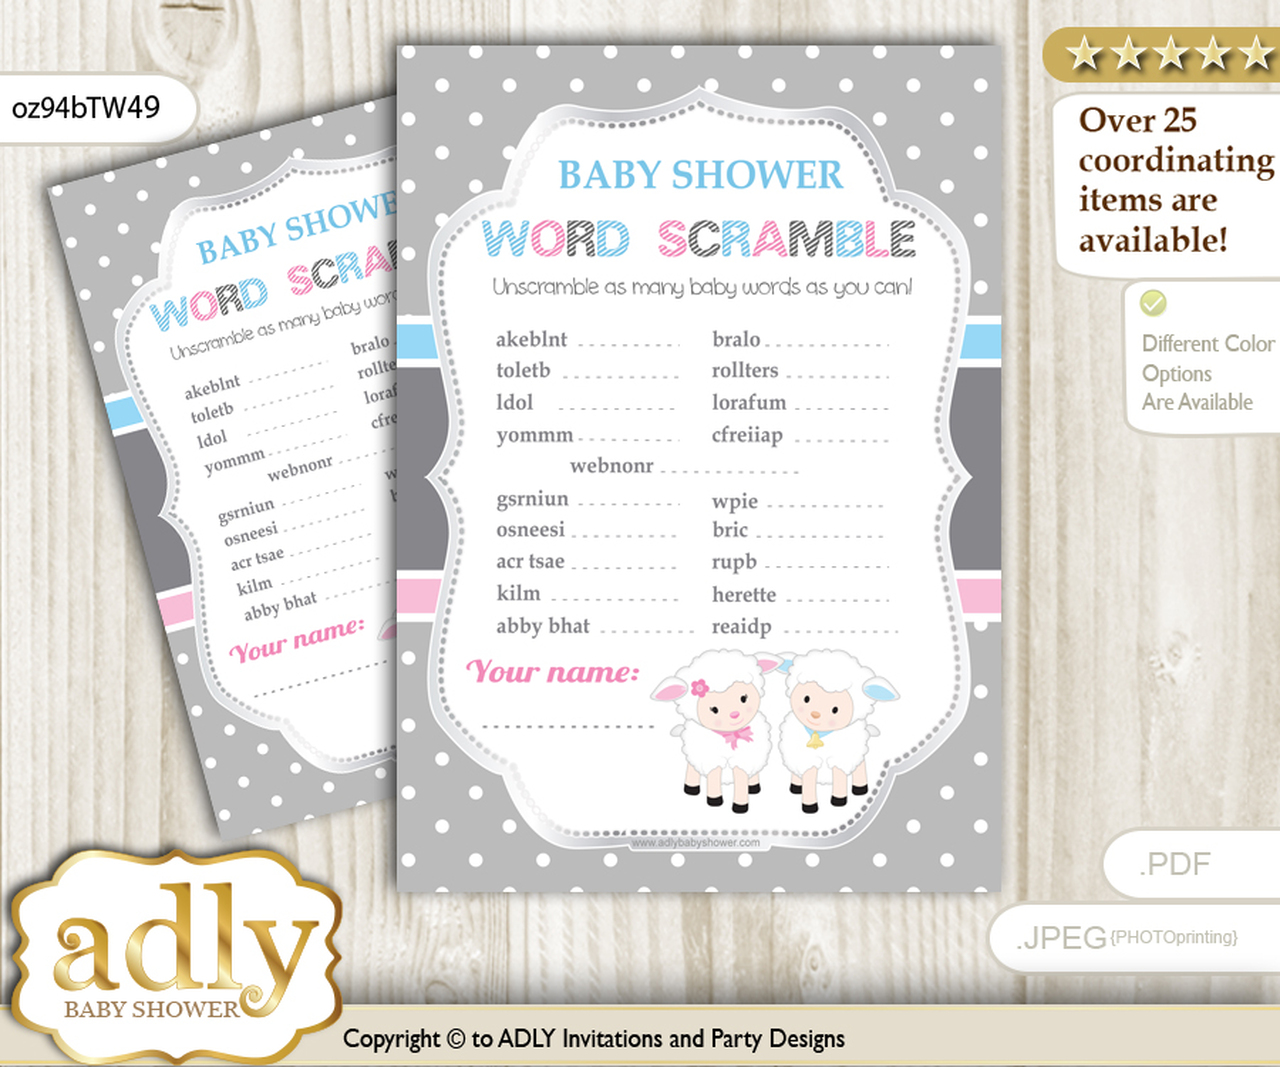 Twins Lamb Word Scramble Game For Baby Shower Adly Invitations And